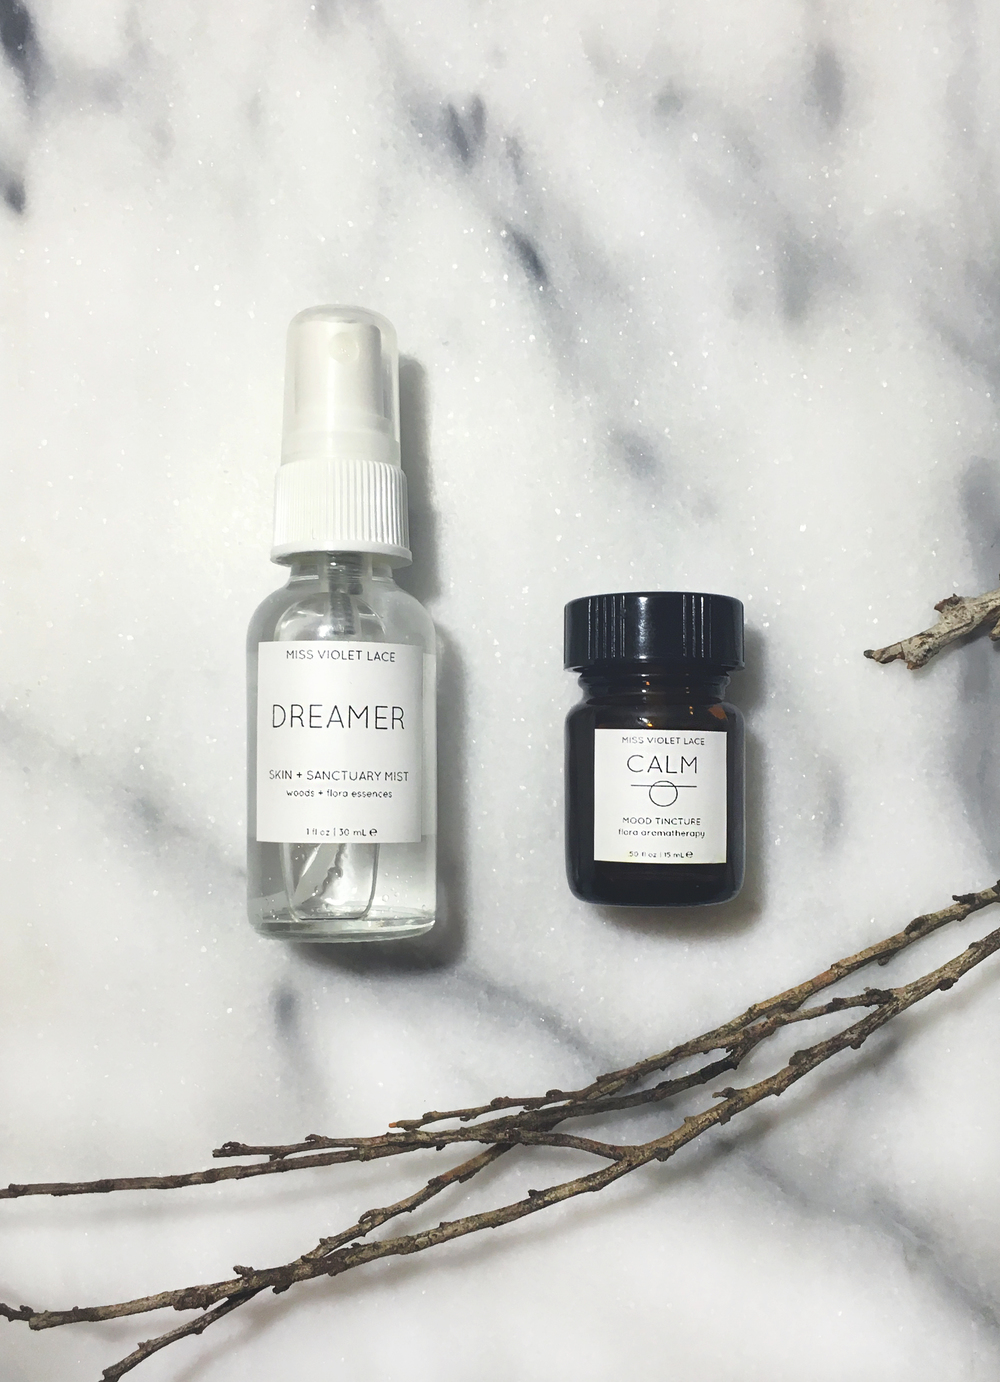 Miss Violet Lace DREAMER Mist and CALM Mood Tincture